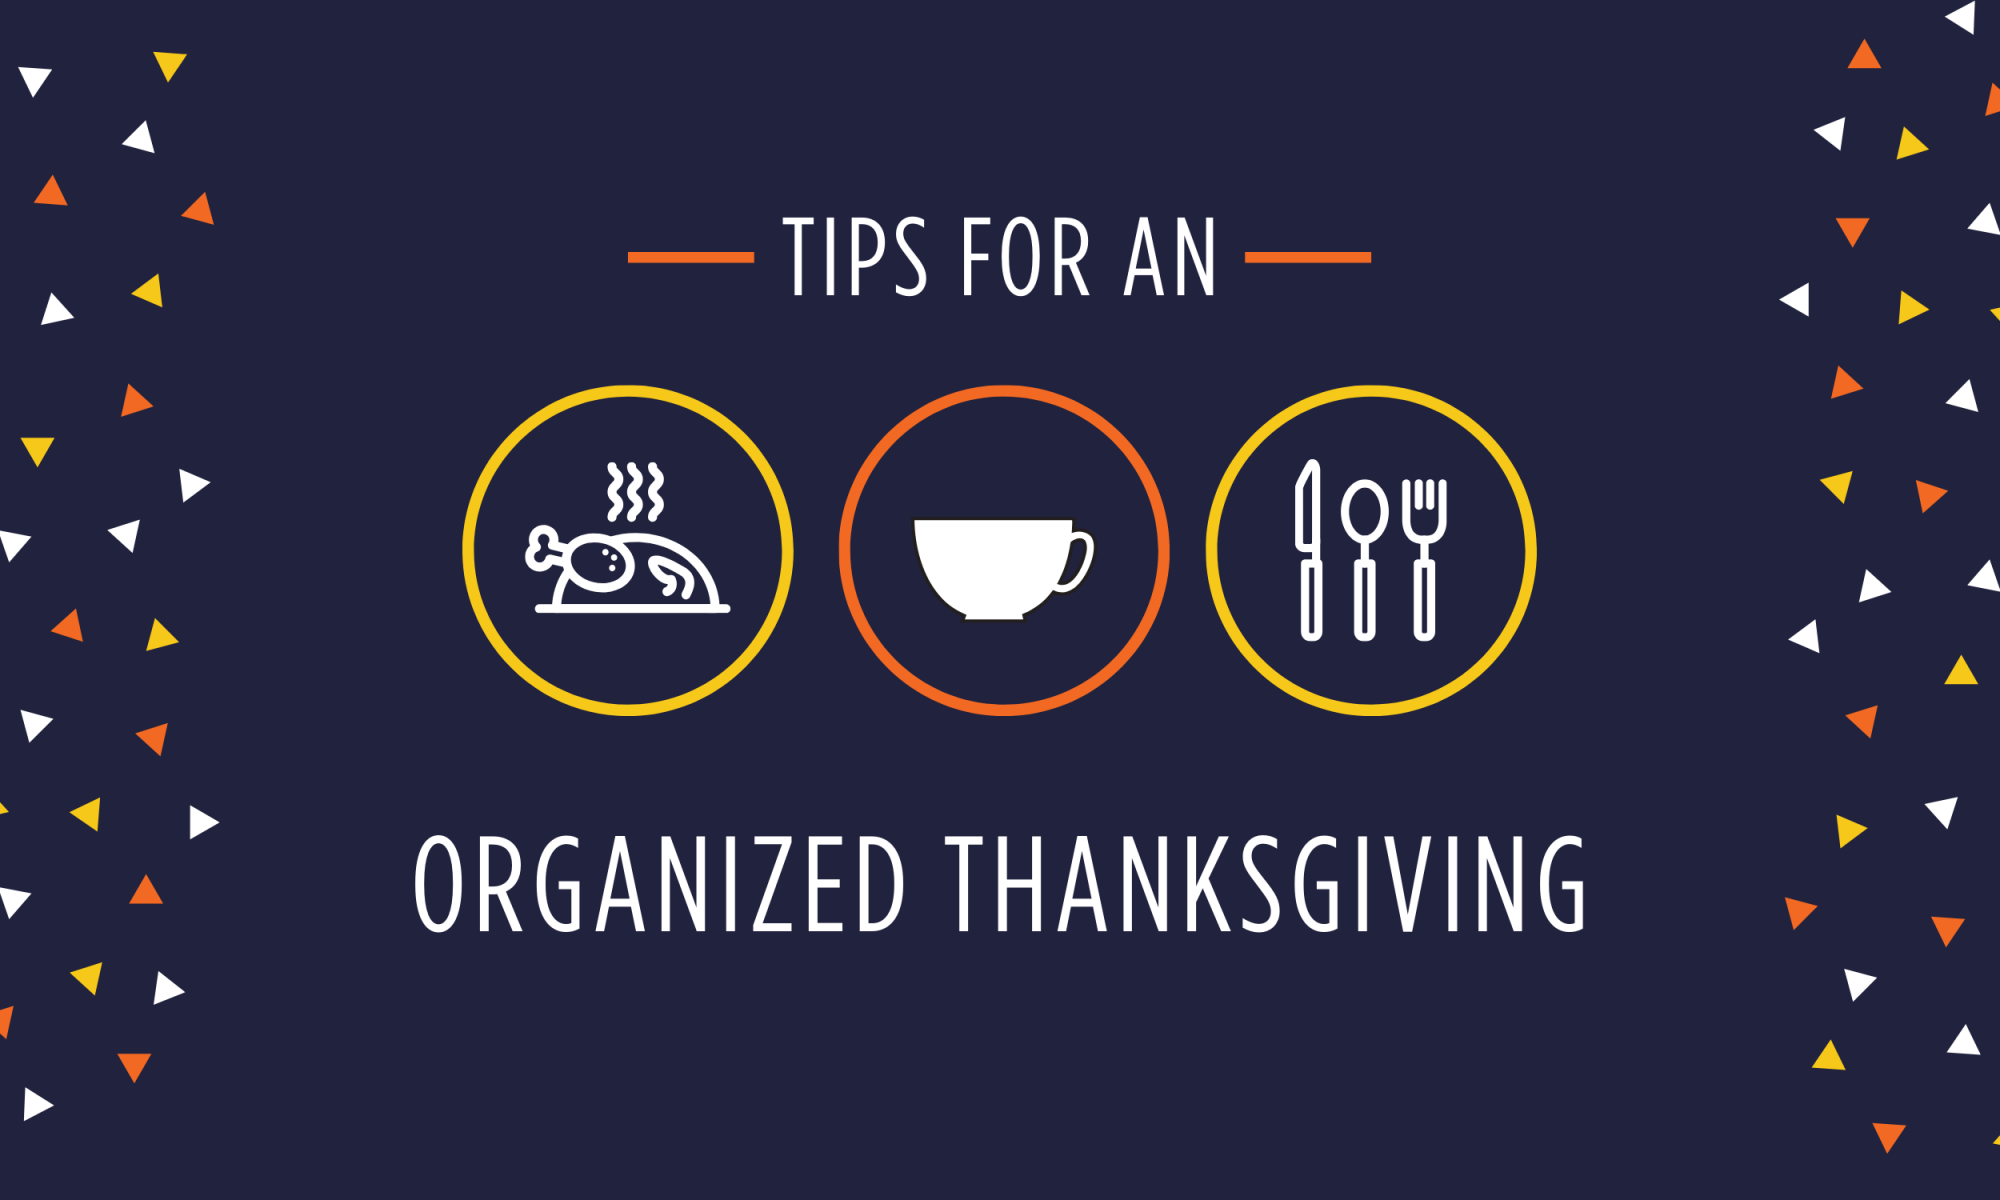 Tips for an organized thanksgiving.